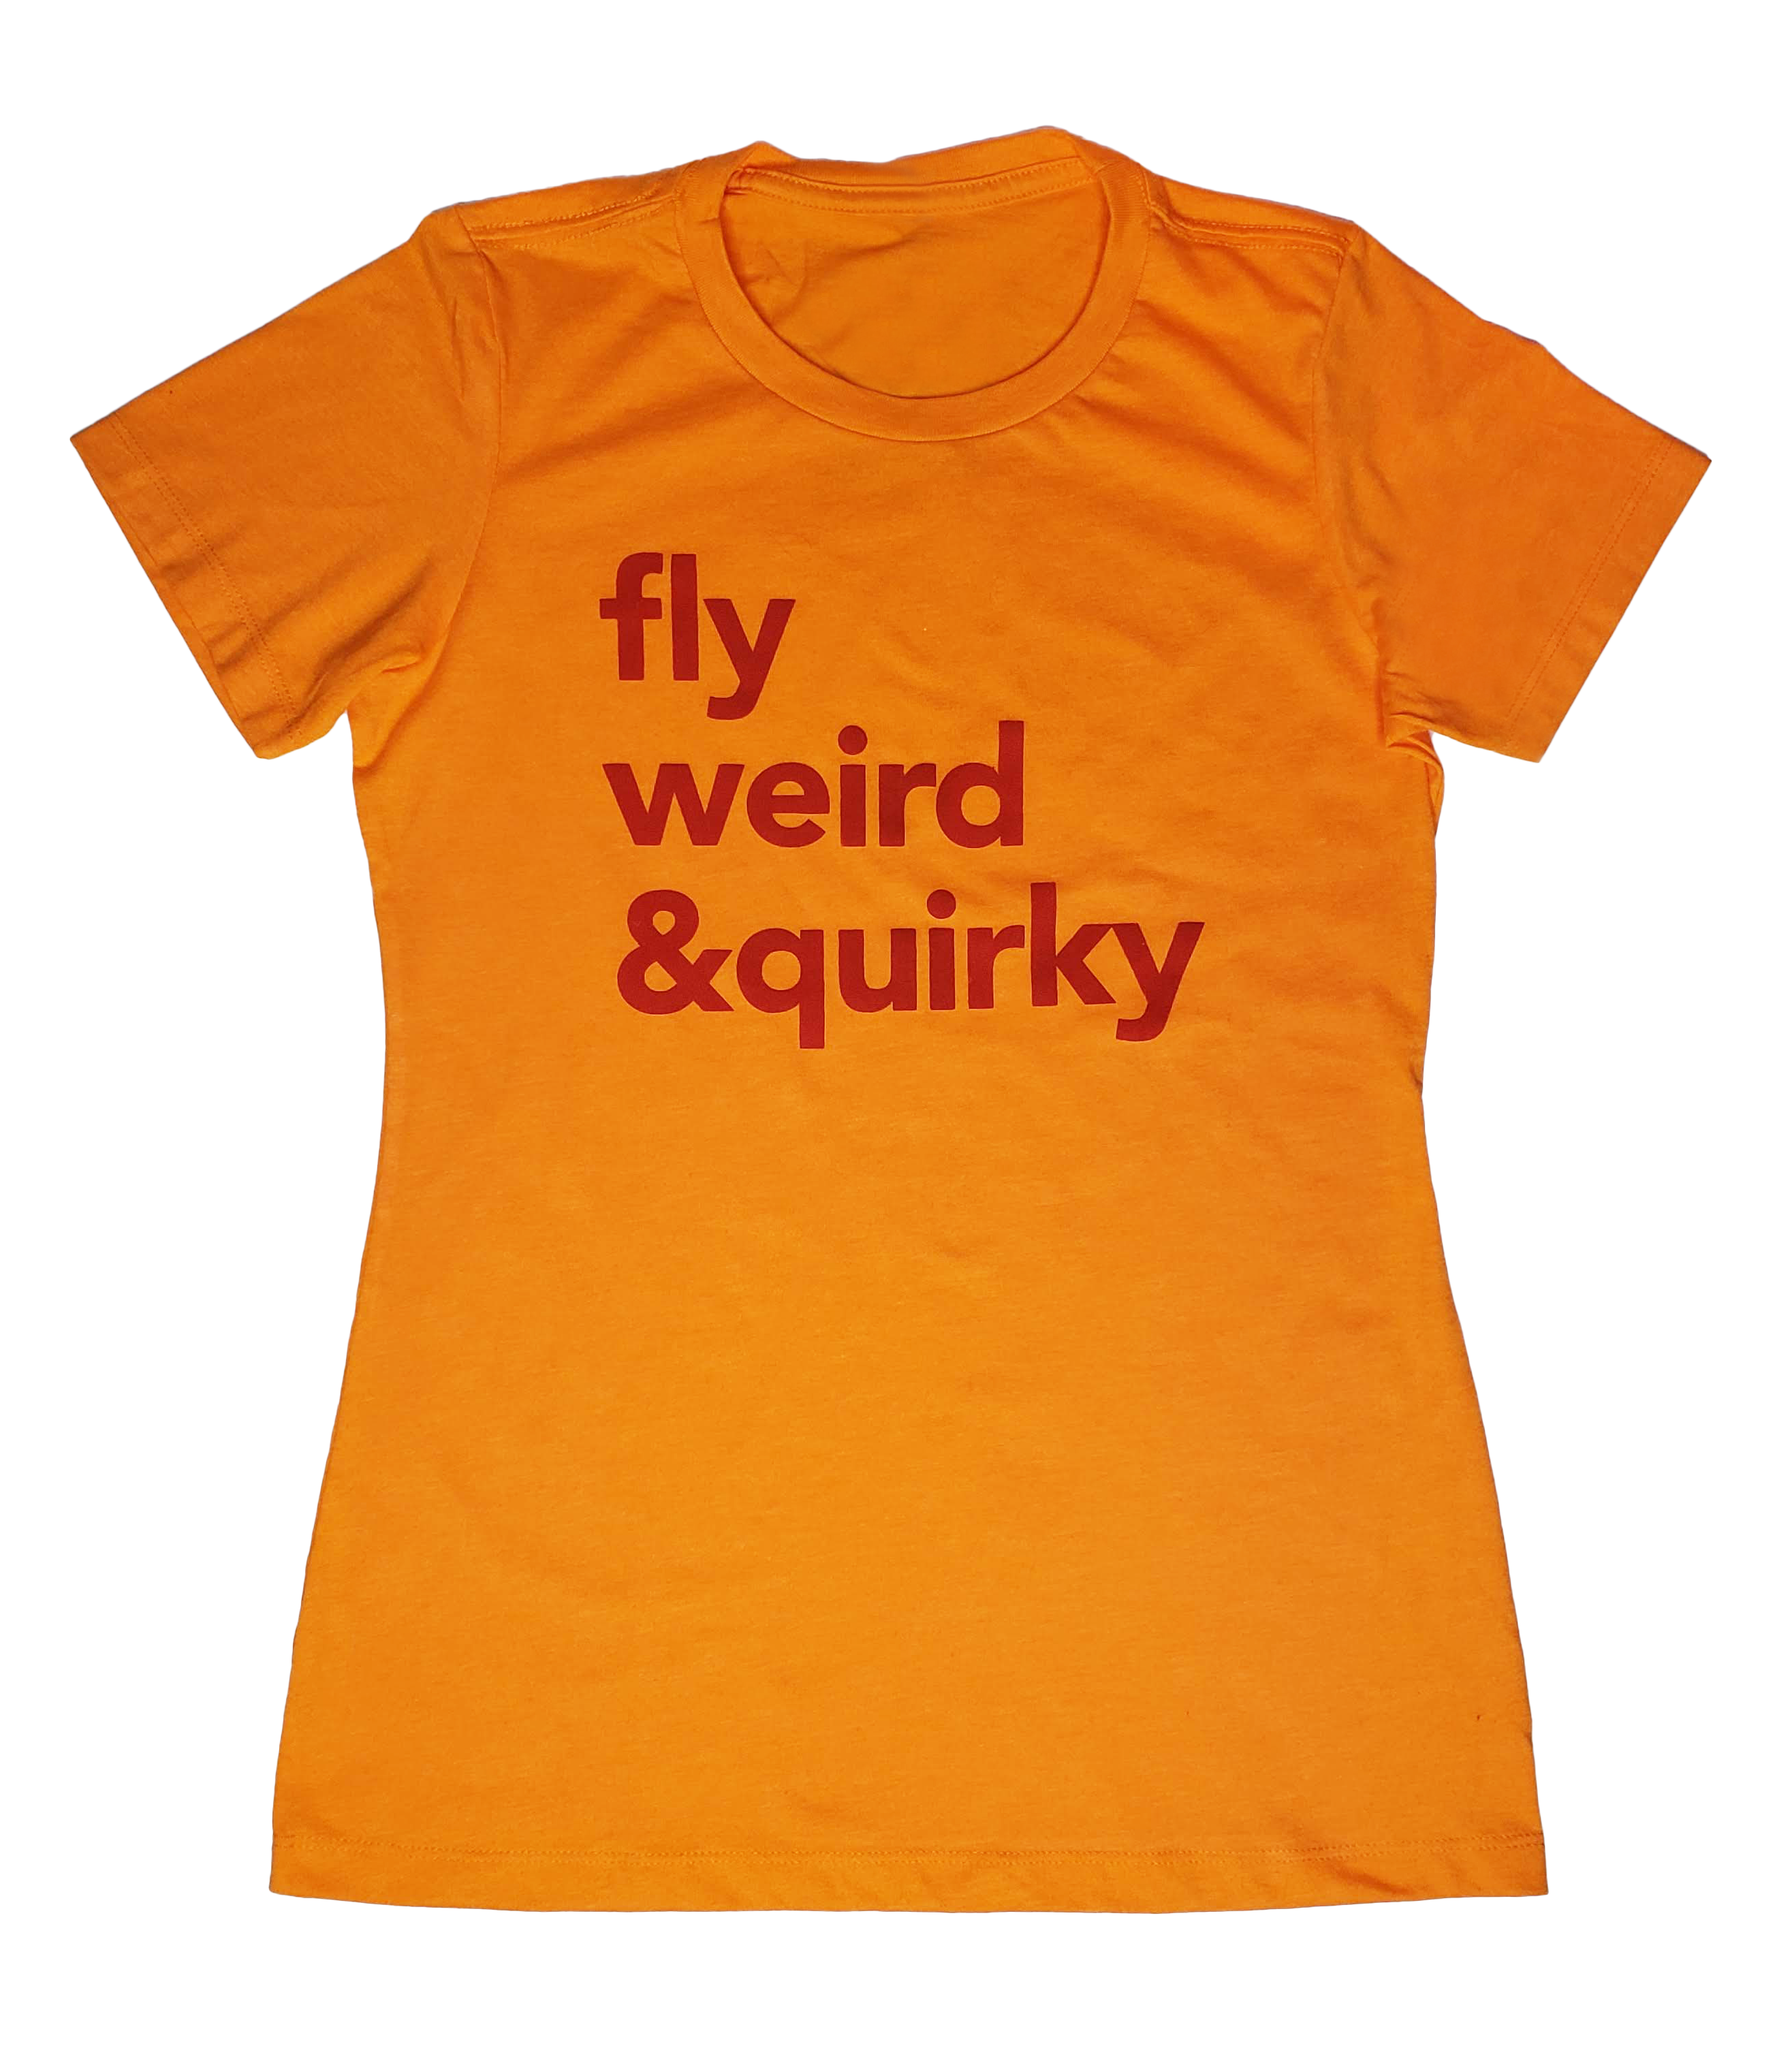 Fly Nerd Fly Weird & Quirky Ladies Tee